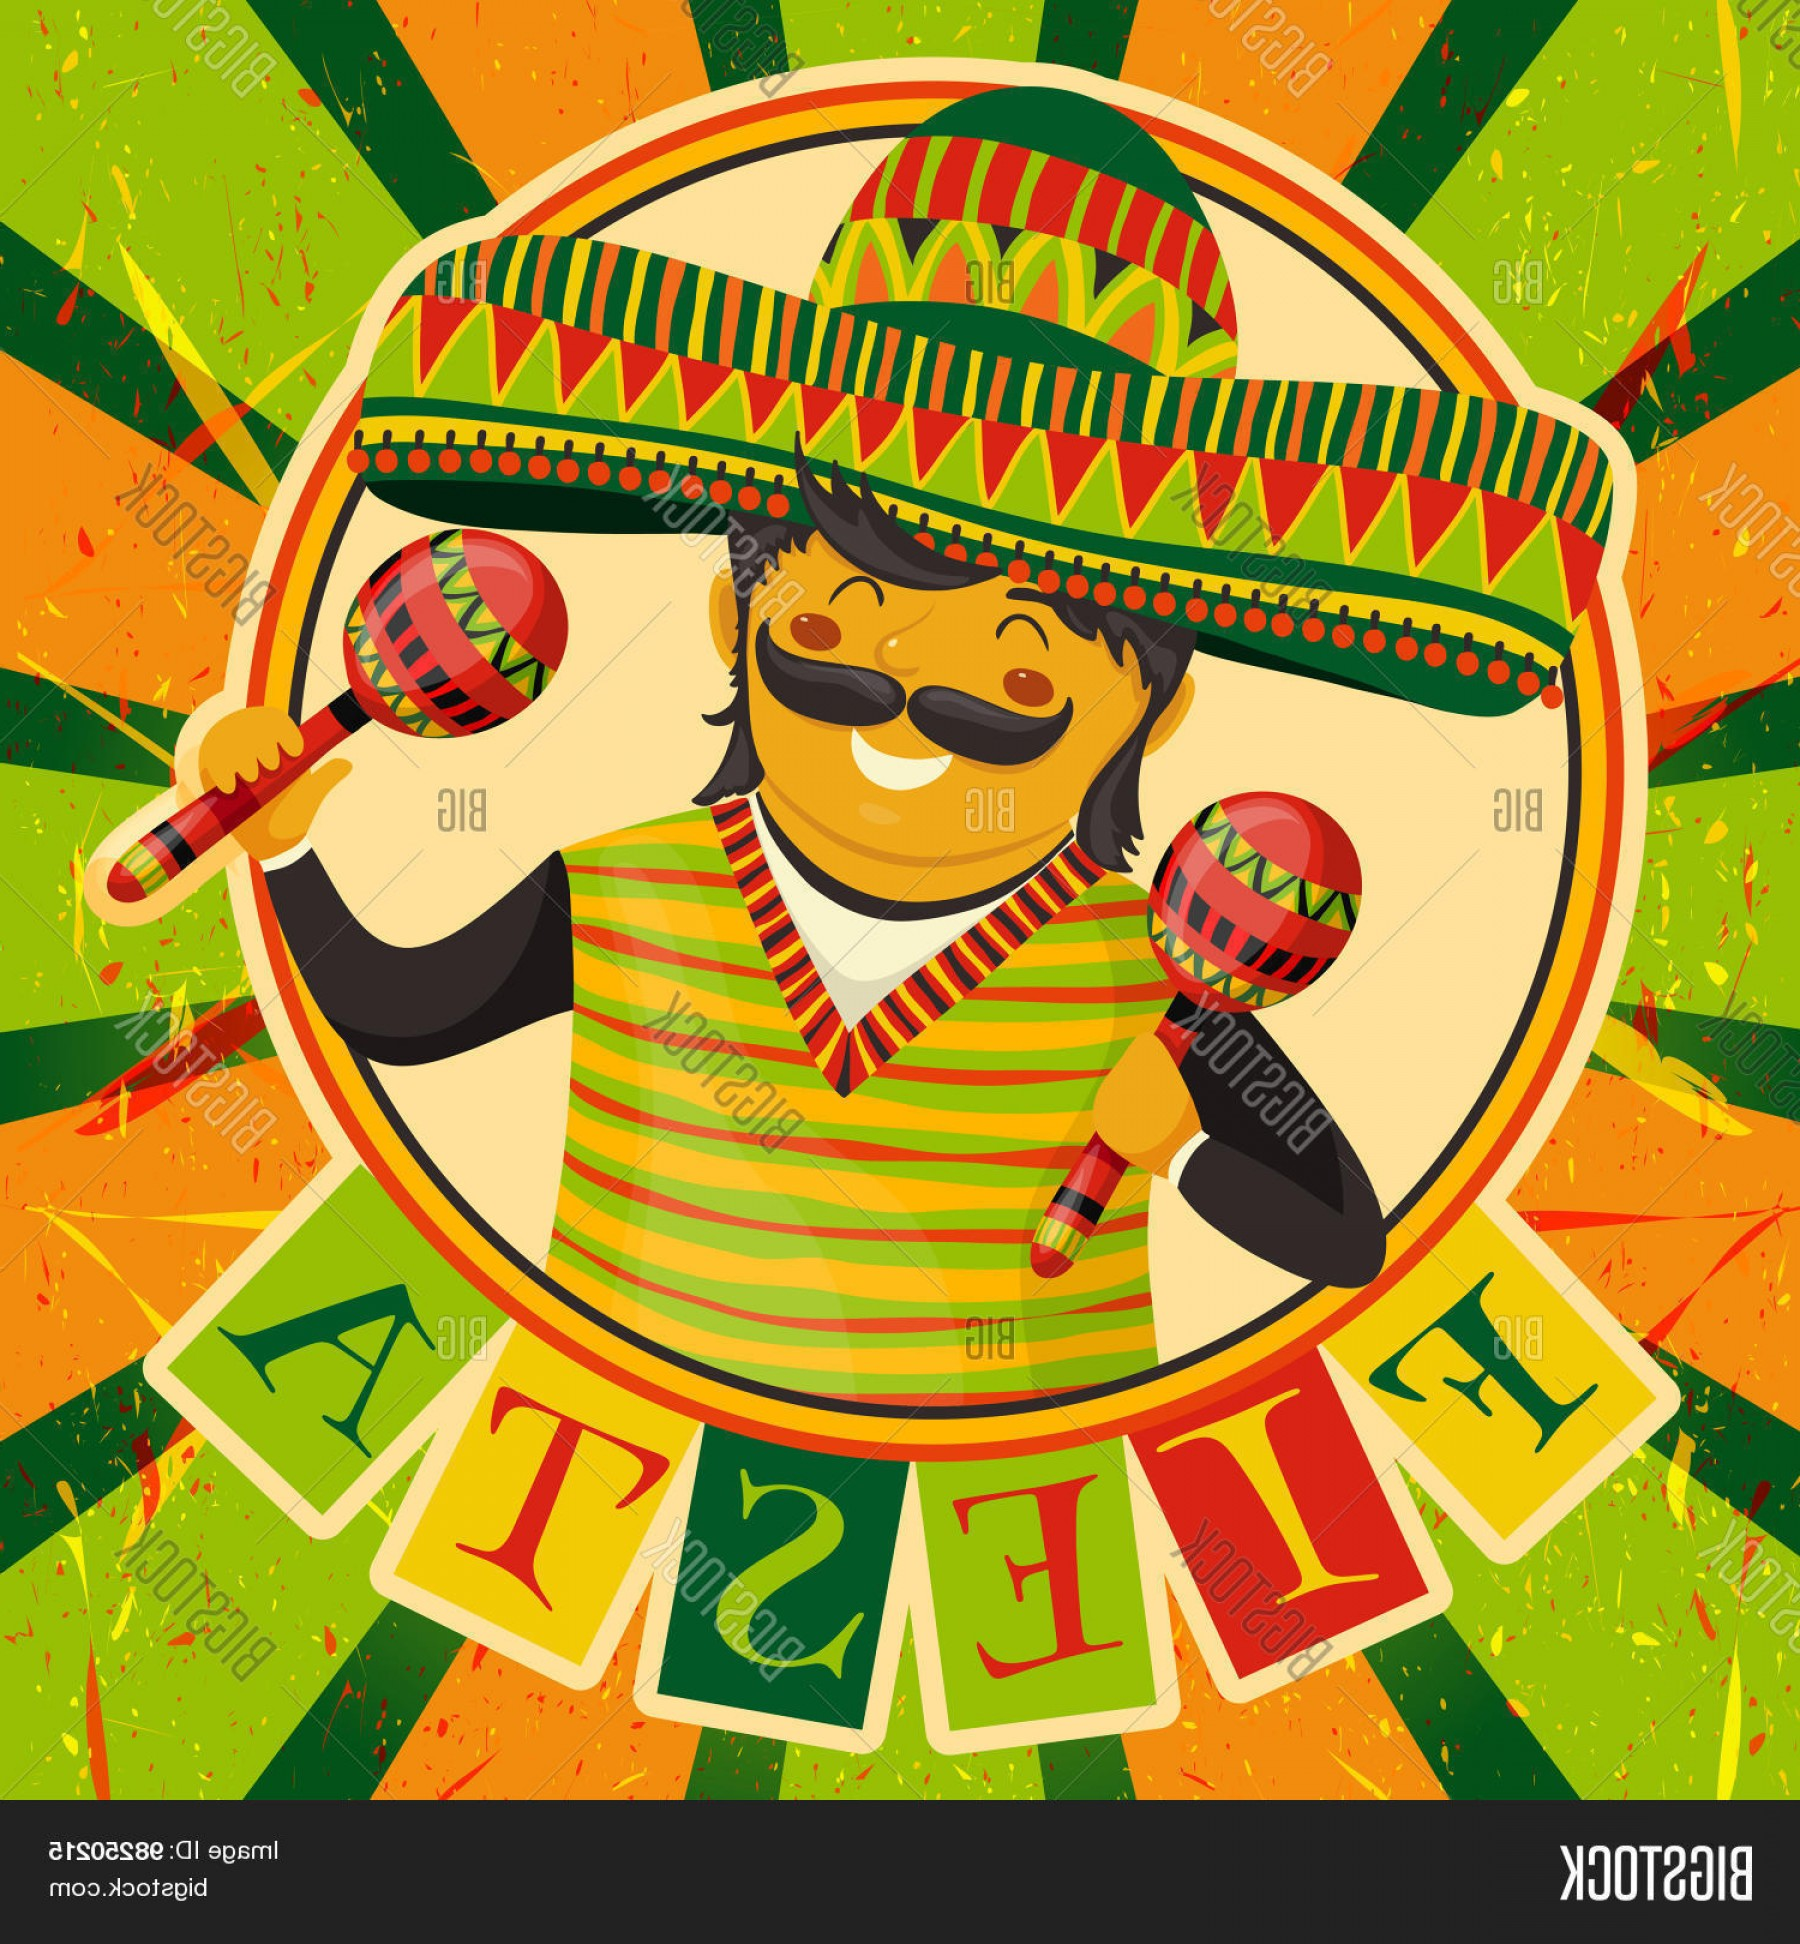 Fiesta Mexico Vector: Stock Vector Mexican Fiesta Party Invitation With Mexican Man Playing The Maracas In A Sombrero Hand Drawn Vecto